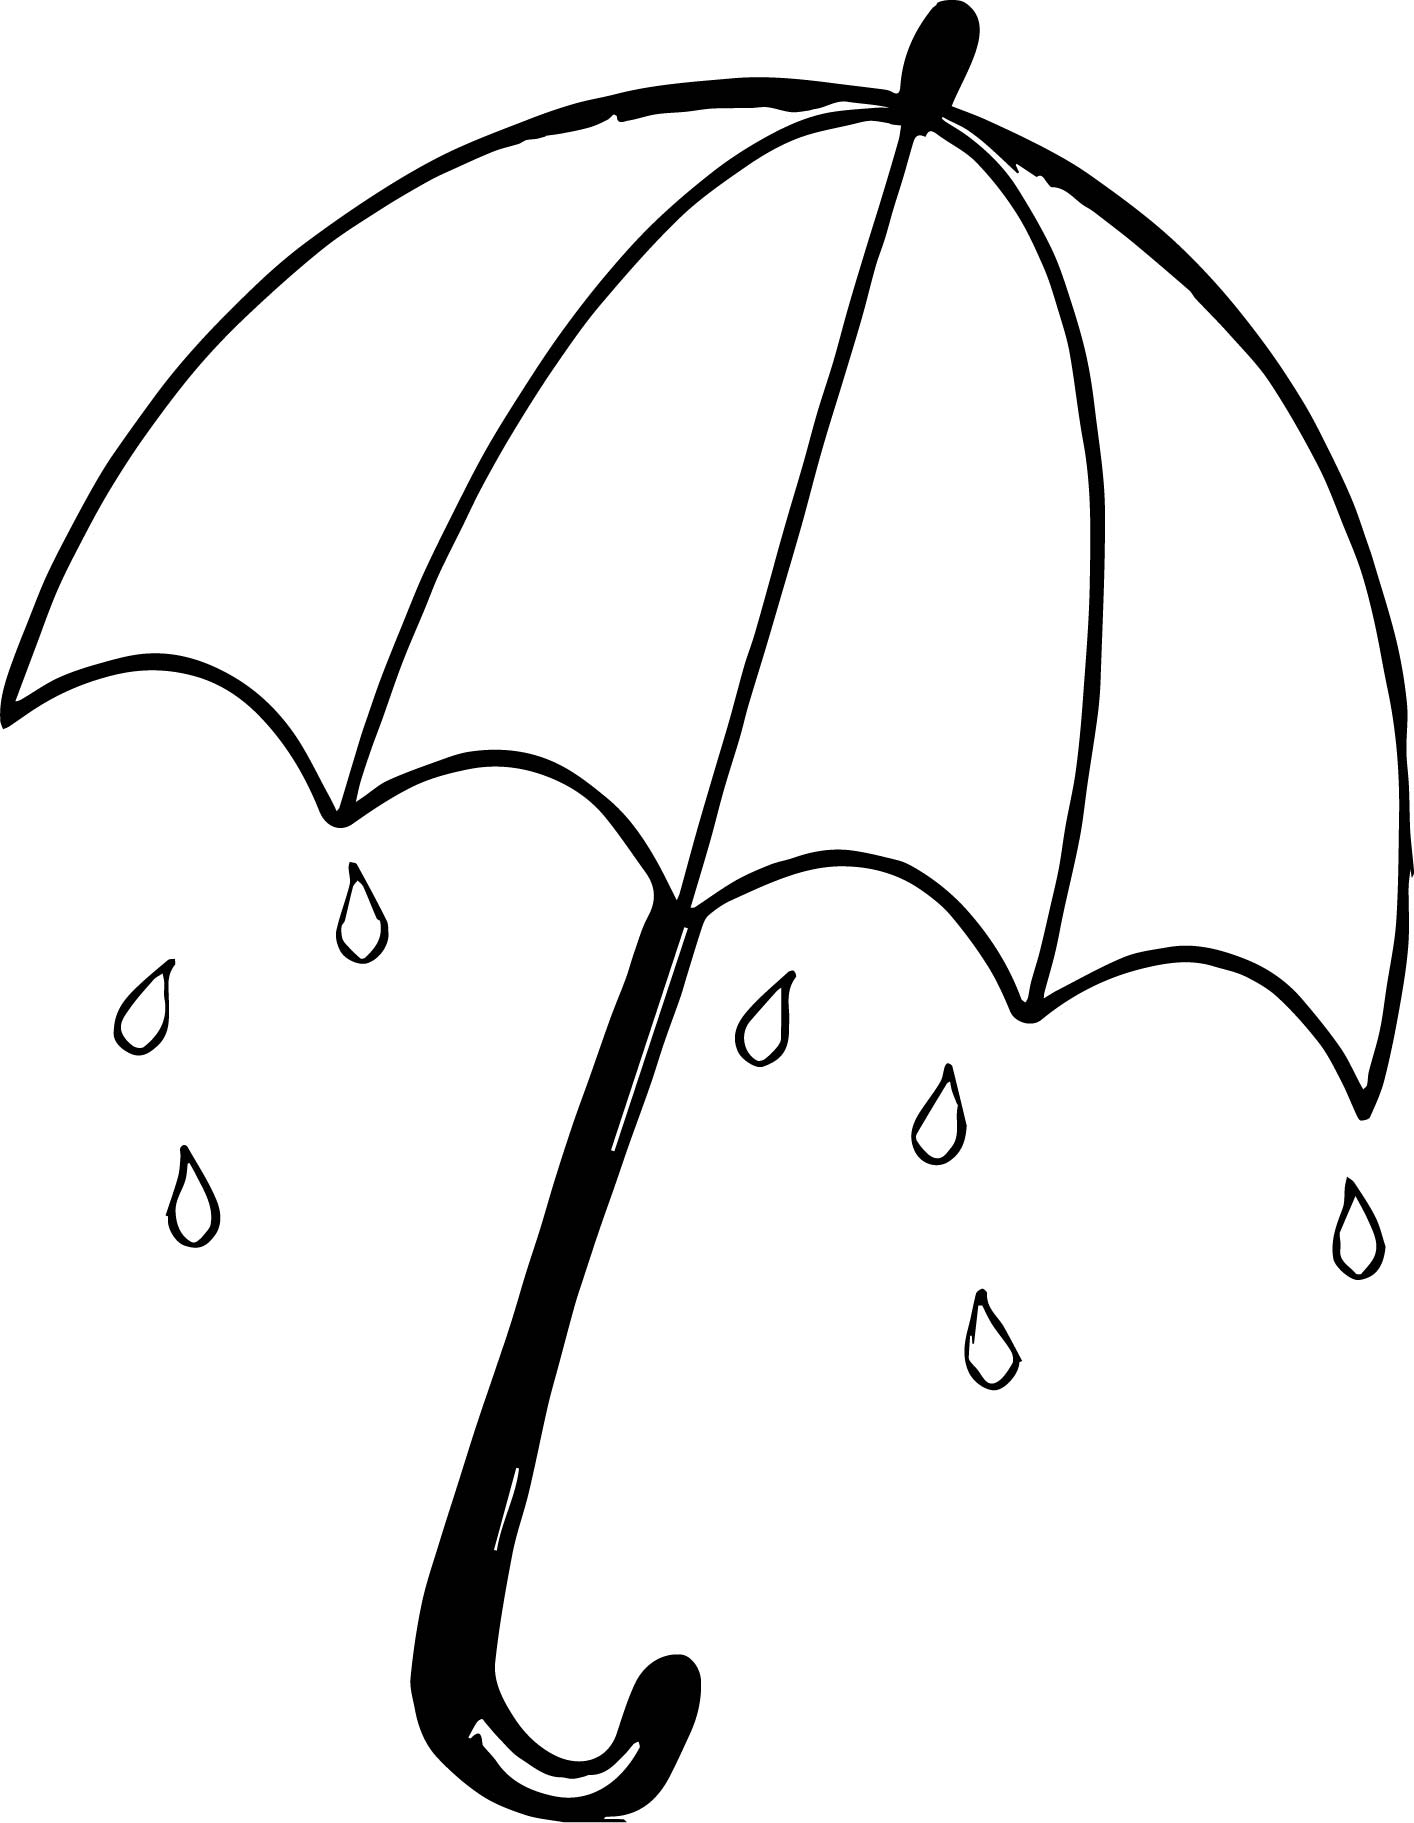 April Shower Umbrella Coloring Page